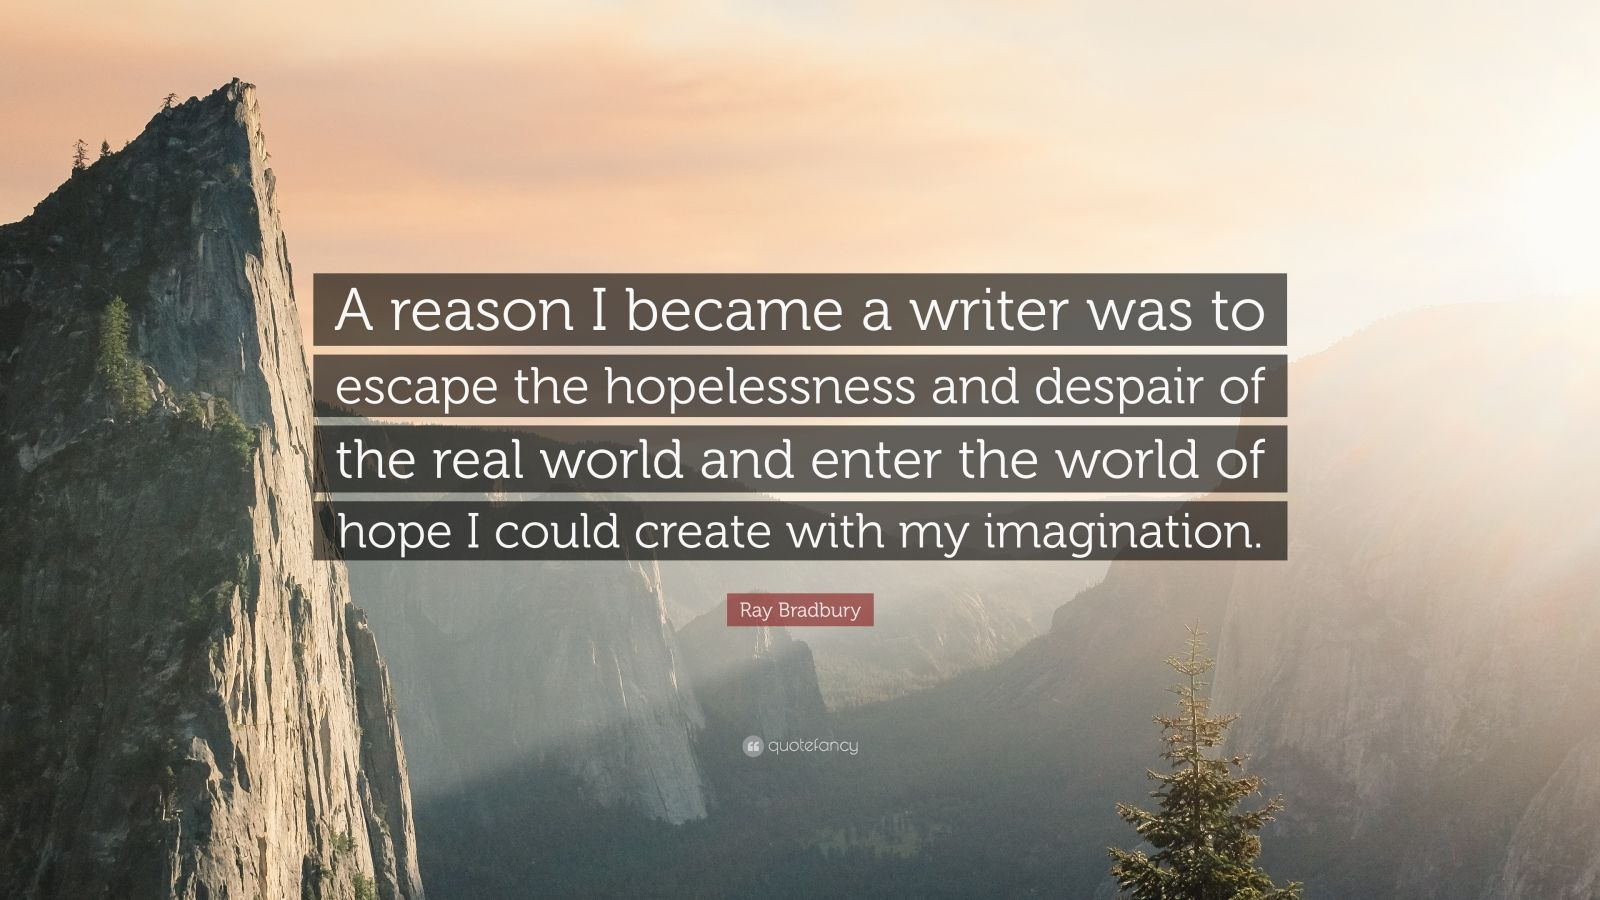 """Ray Bradbury Quote: """"A reason I became a writer was to escape the hopelessness and despair of the real world and enter the world of hope I could create with my imagination."""""""